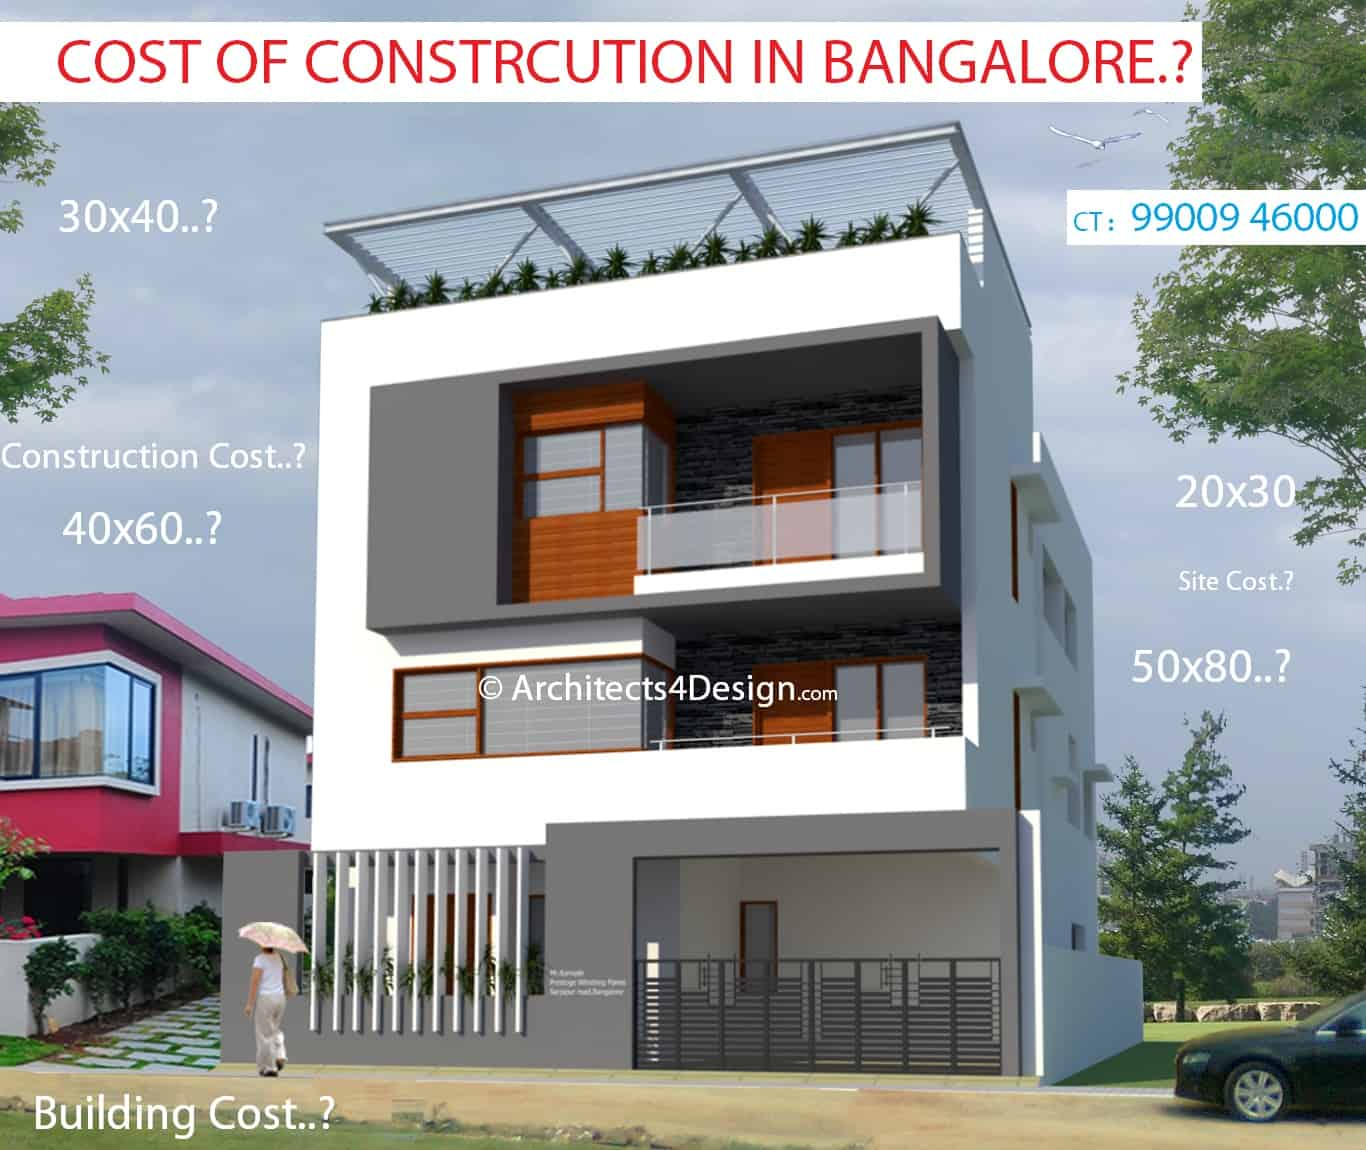 Construction Cost In Bangalore Know Cost Of Construction